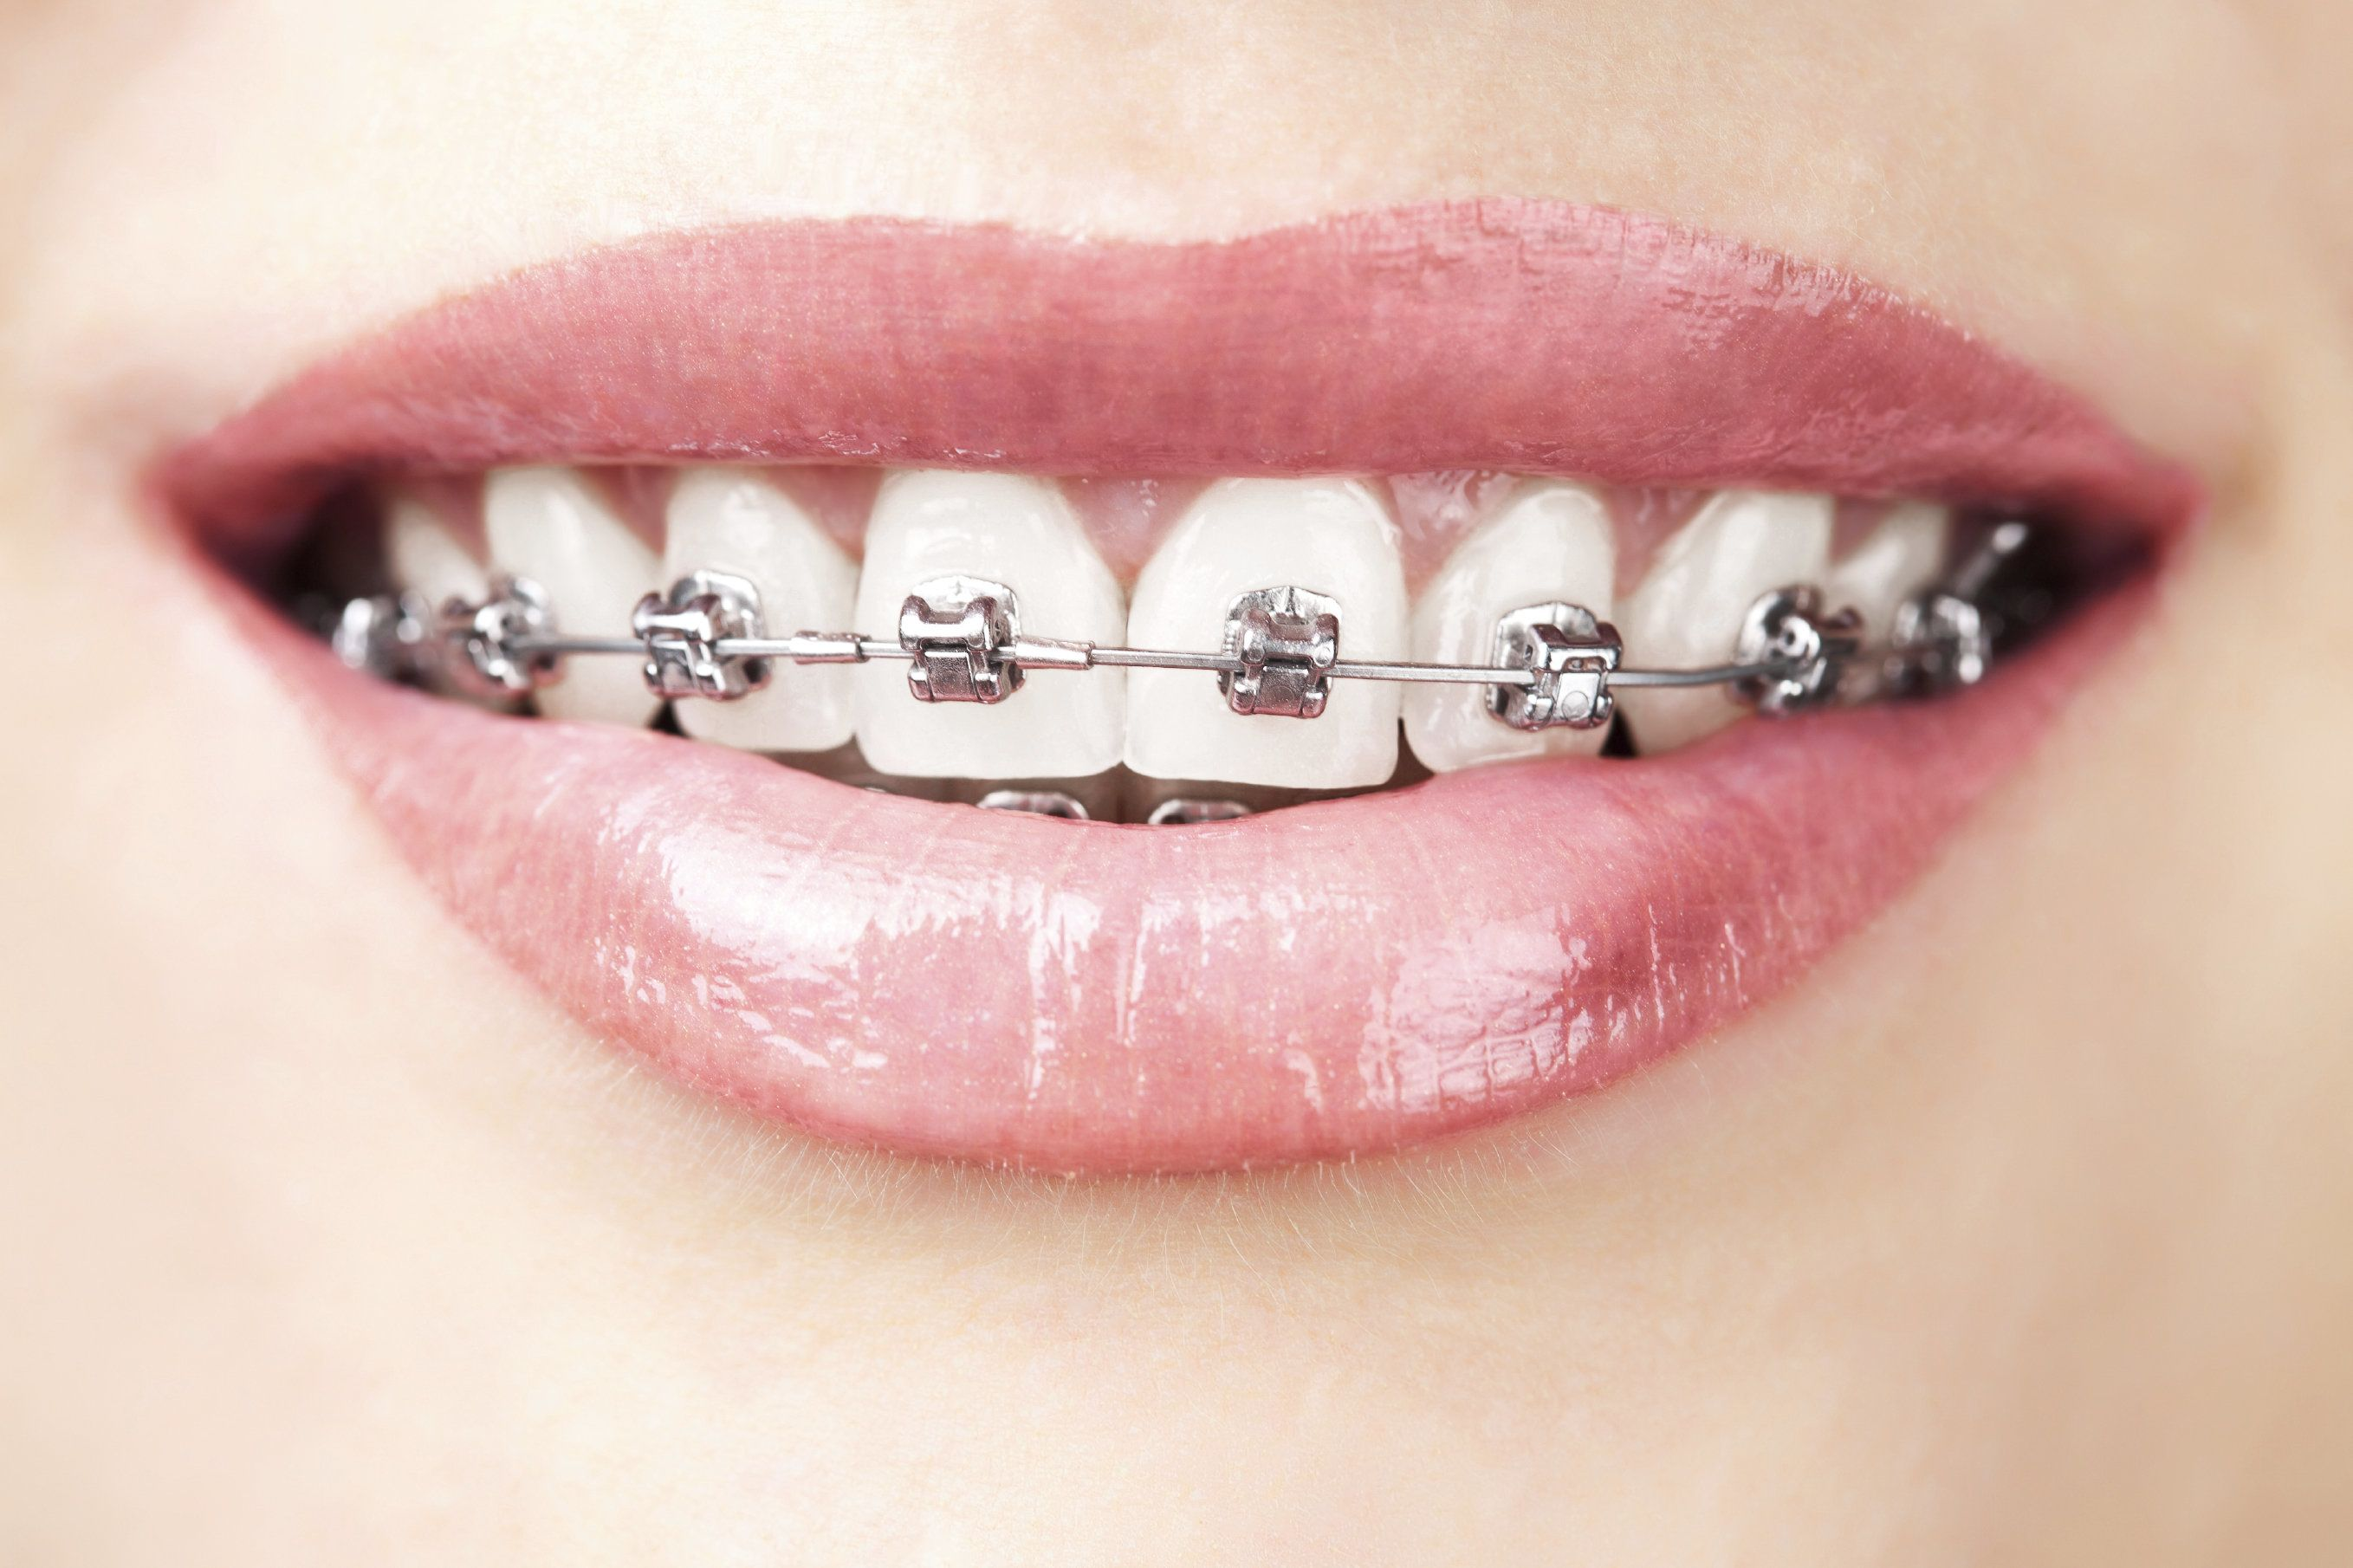 Photo of a woman with braces